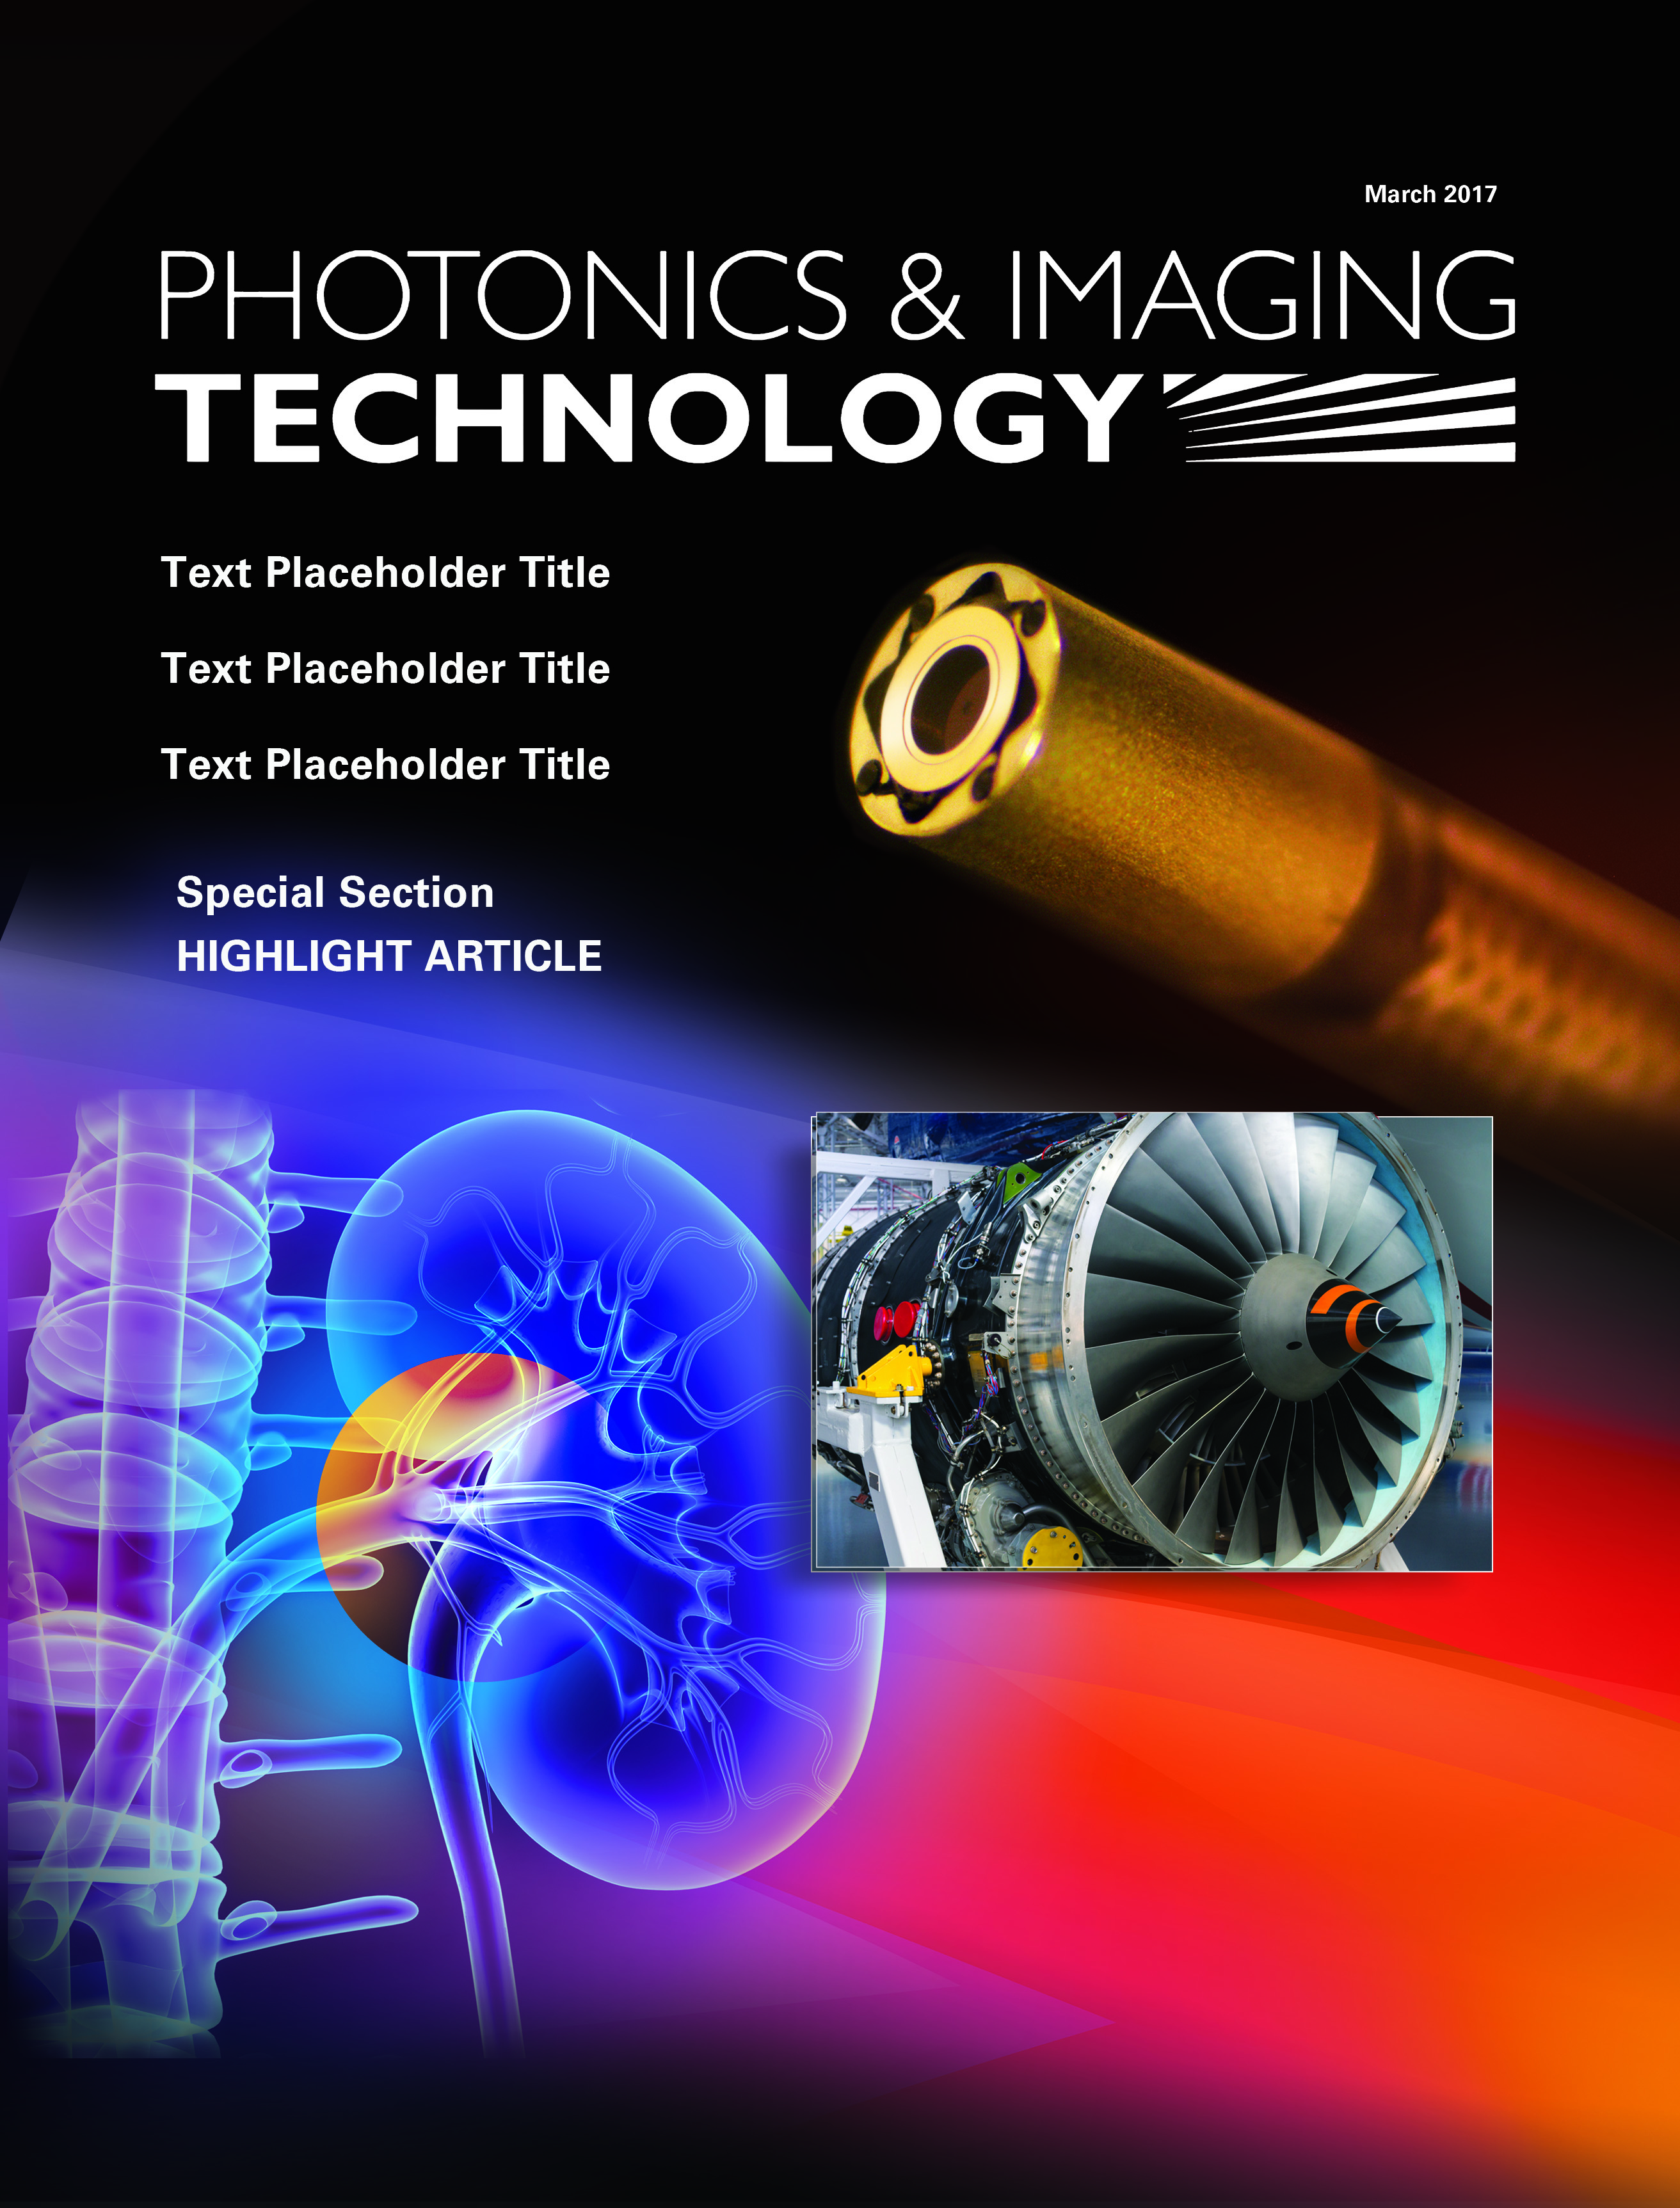 Smith Miller Moore created a Photonics & Imaging Technology cover to highlight the use of chip-on-tip cameras featured in an article by Toshiba Imaging Systems Division